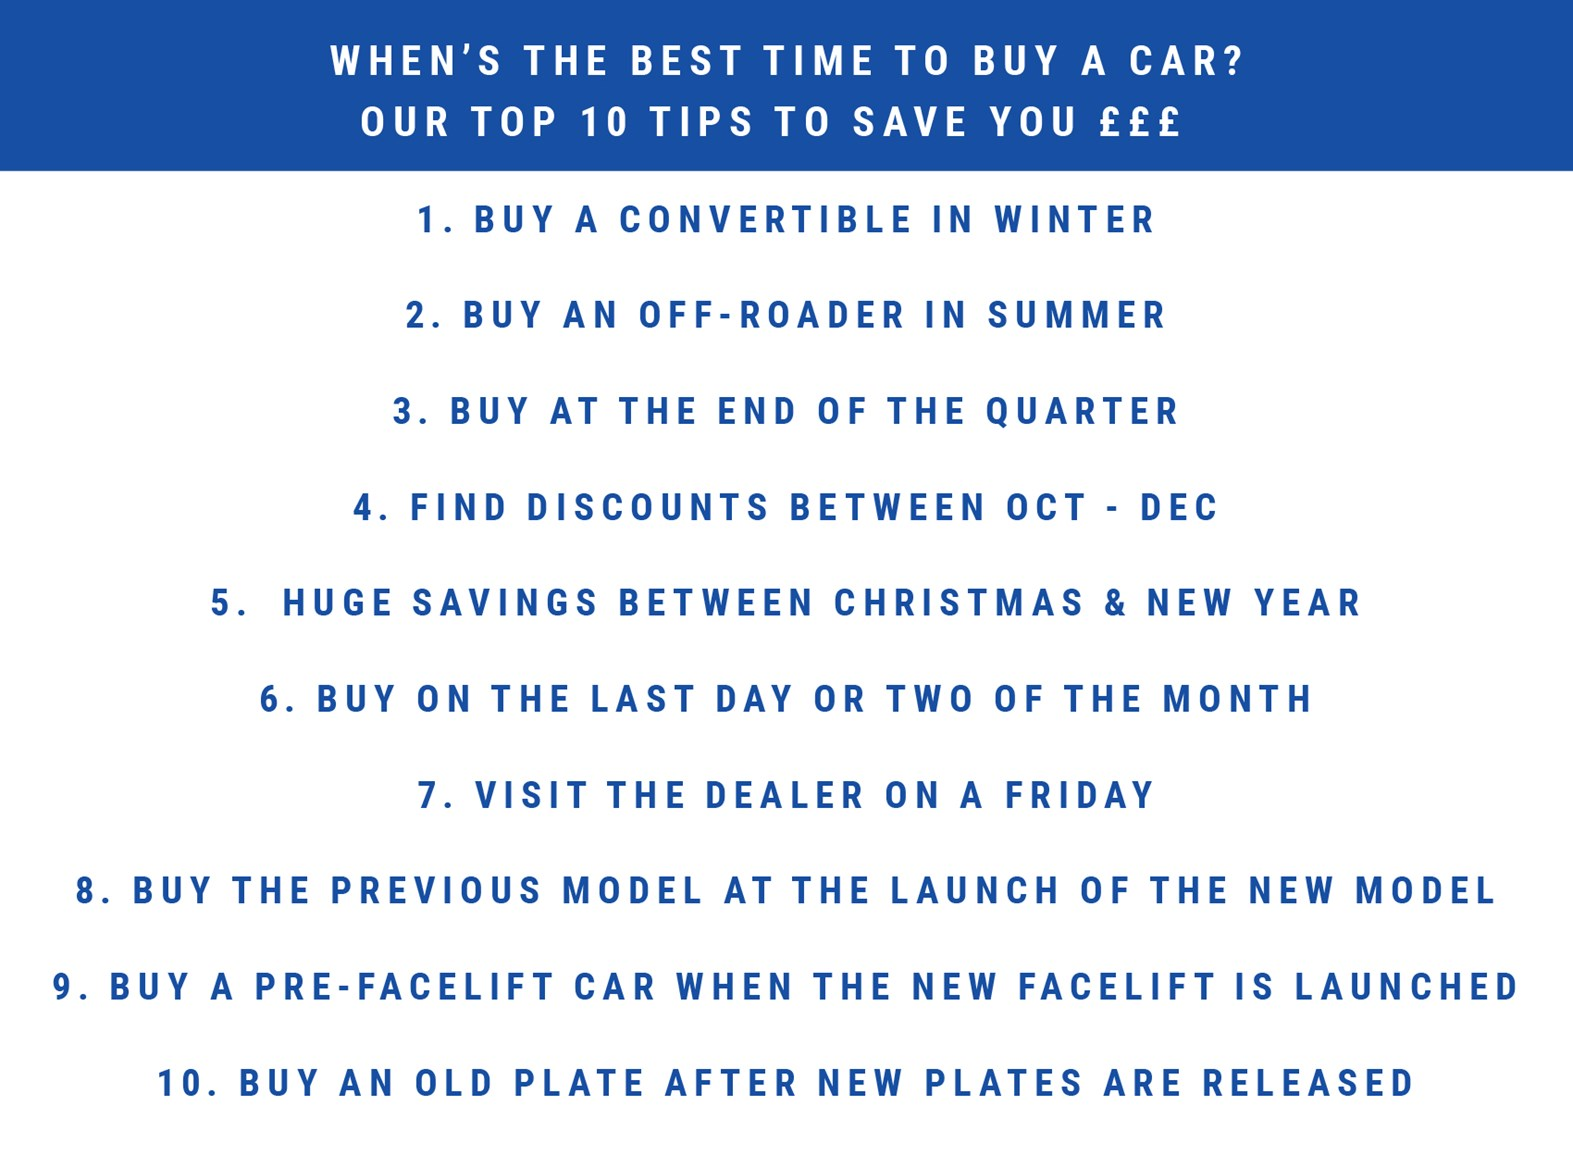 Used Car Dealers London >> When's the best time to buy a car? | Parkers